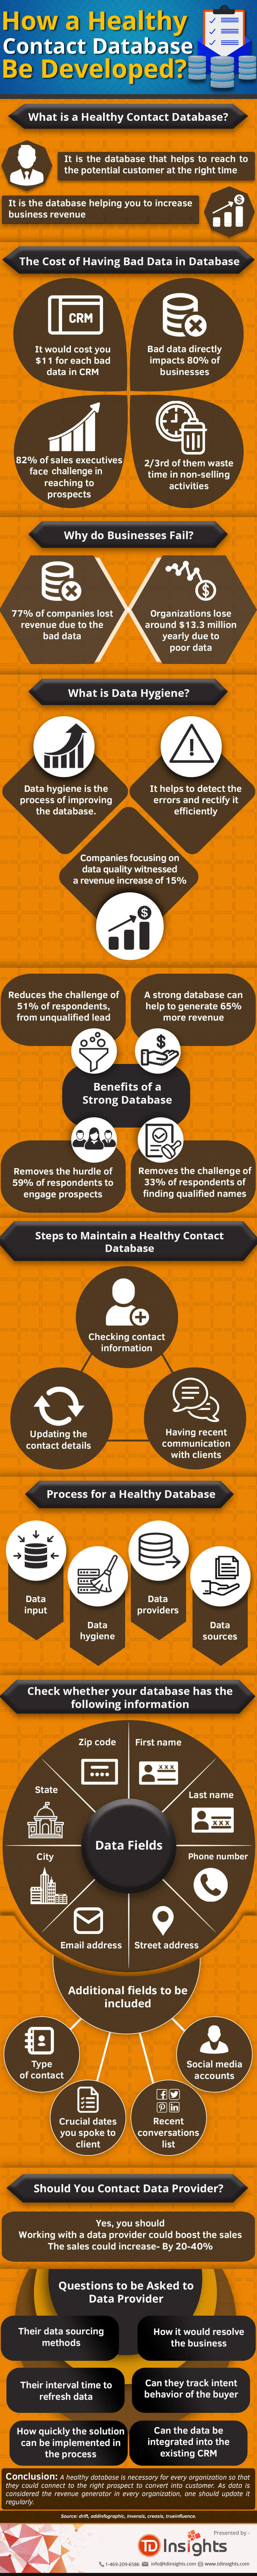 healthy email contact database